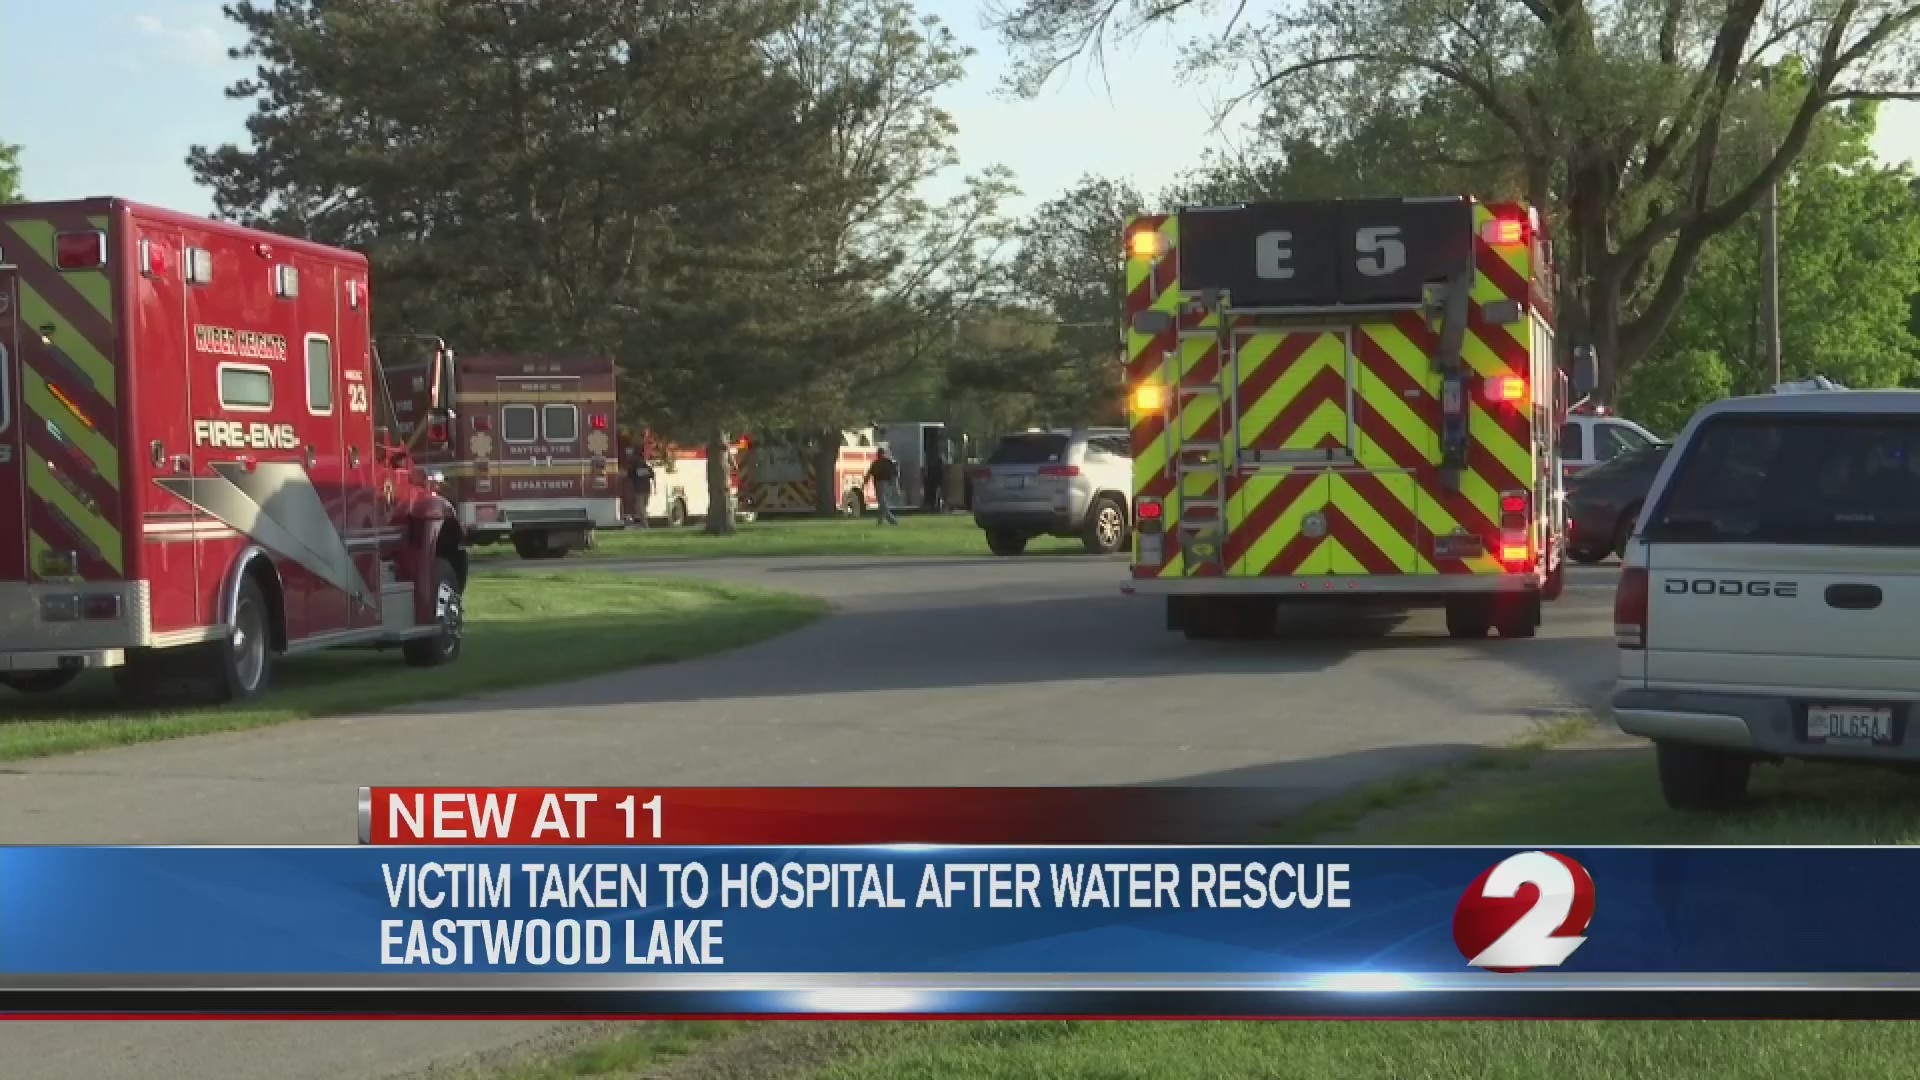 Victim taken to hospital after water rescue dies